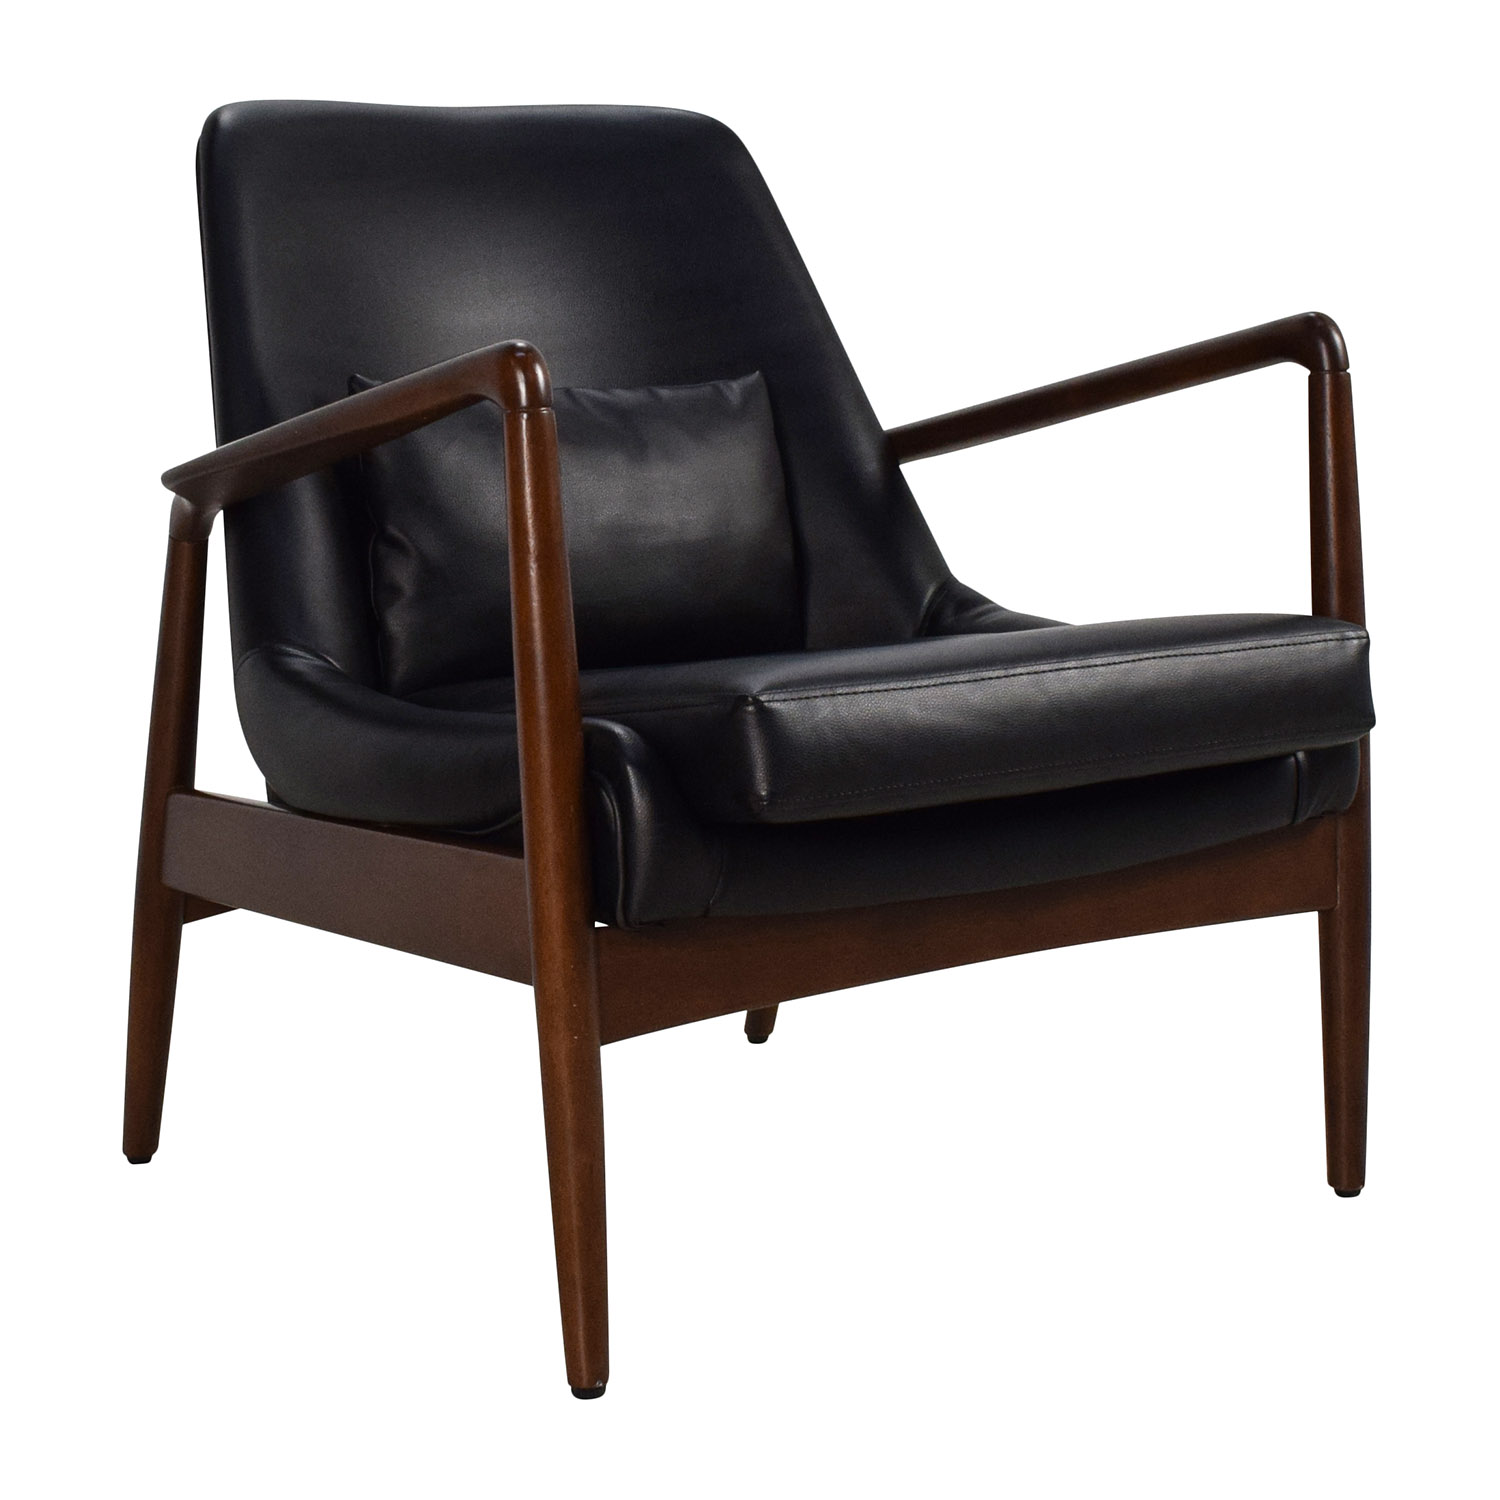 Black Leather Lounge Chair used; buy Black Leather Lounge Chair Accent  Chairs; Black Leather Lounge Chair price ...